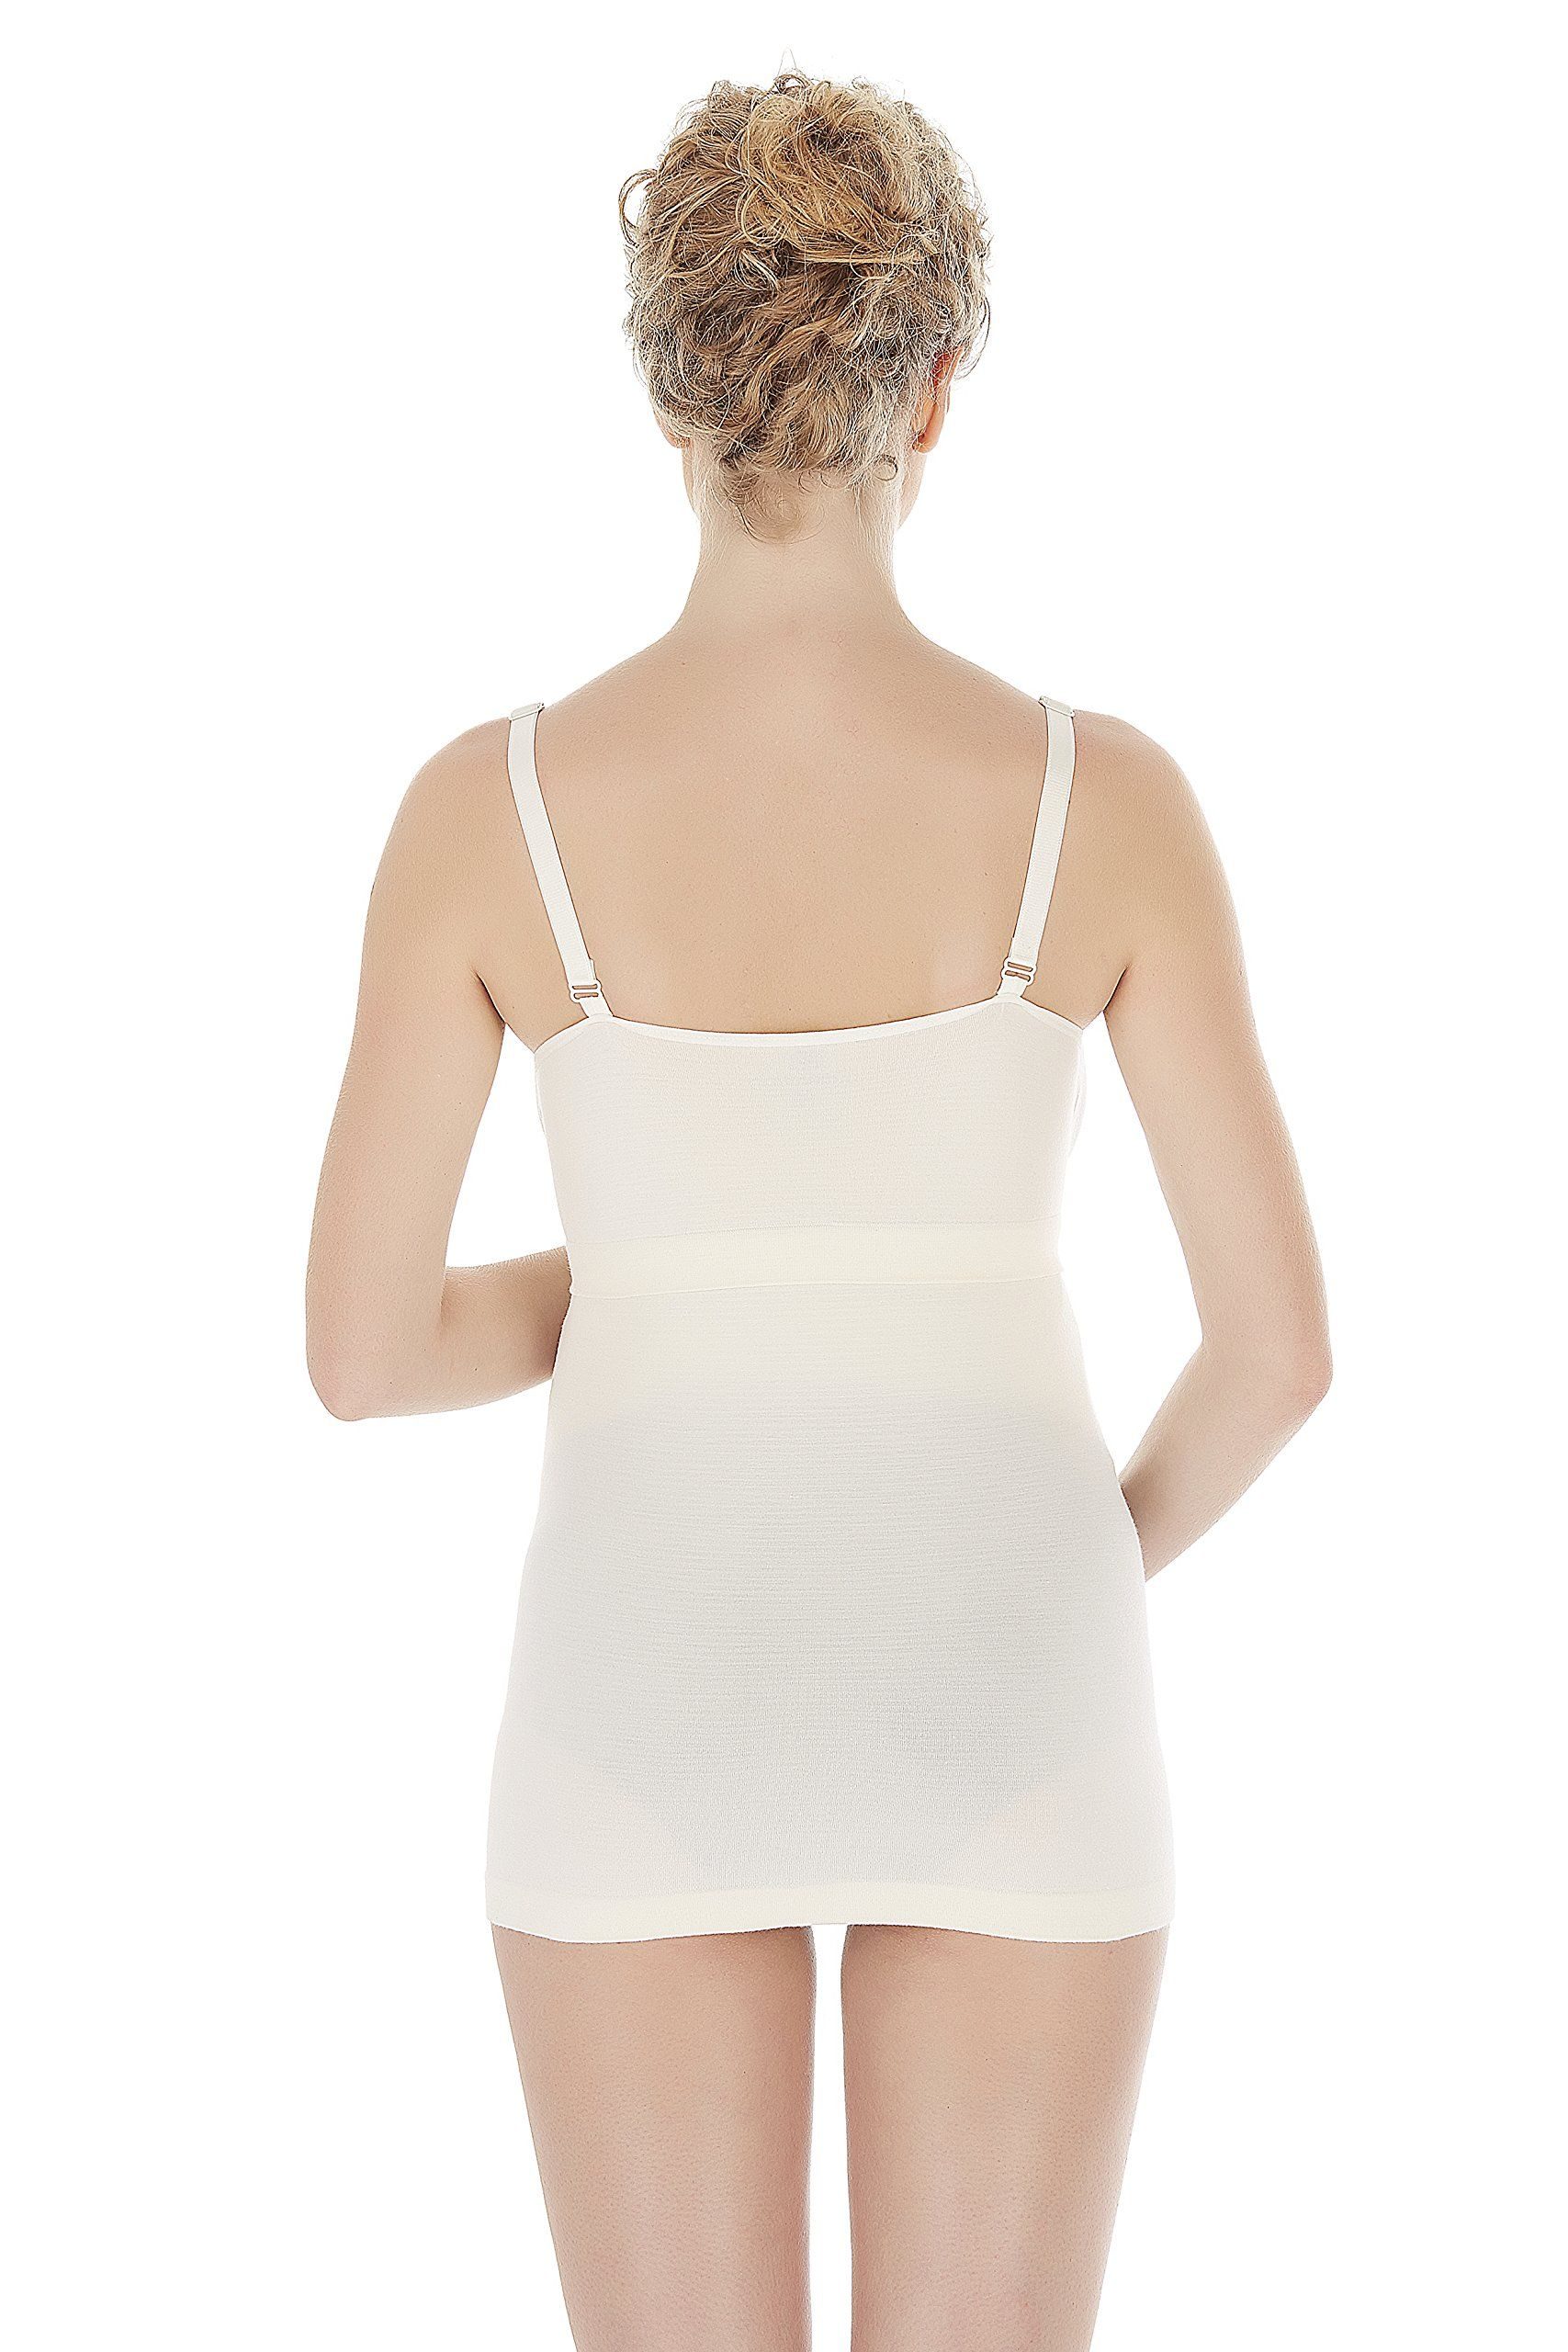 4891601d2afee nursing tops - Urbamboo Womens Maternity Nursing Breastfeeding Tank Top Cami  Seamless and Bamboo    Check this remarkable product by mosting likely to  the ...